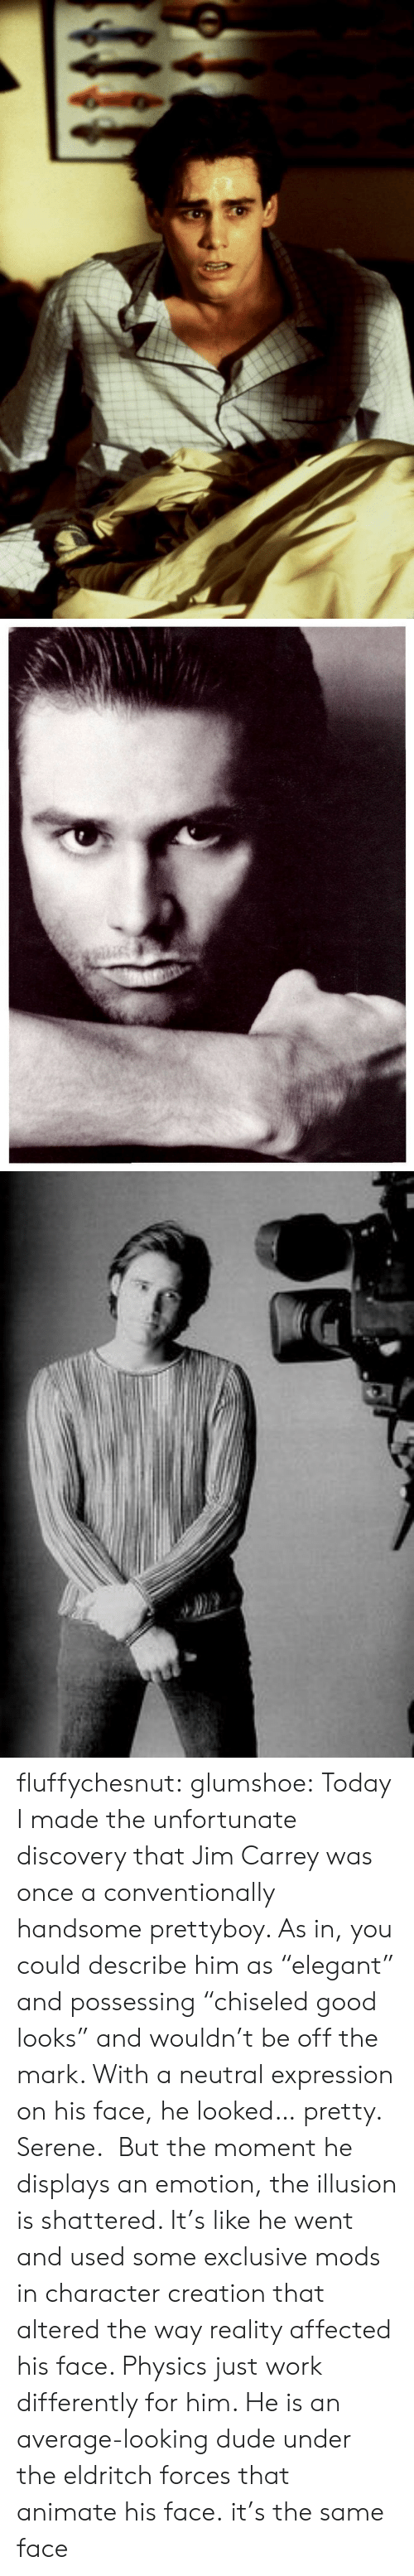 """Good Looks: fluffychesnut:  glumshoe:  Today I made the unfortunate discovery that Jim Carrey was once a conventionally handsome prettyboy. As in, you could describe him as""""elegant"""" and possessing""""chiseled good looks"""" and wouldn't be off the mark. With a neutral expression on his face, he looked… pretty. Serene. But the moment he displays an emotion, the illusion is shattered. It's like he went and used some exclusive mods in character creation that altered the way reality affected his face. Physics just work differently for him. He is an average-looking dude under the eldritch forces that animate his face.  it's the same face"""